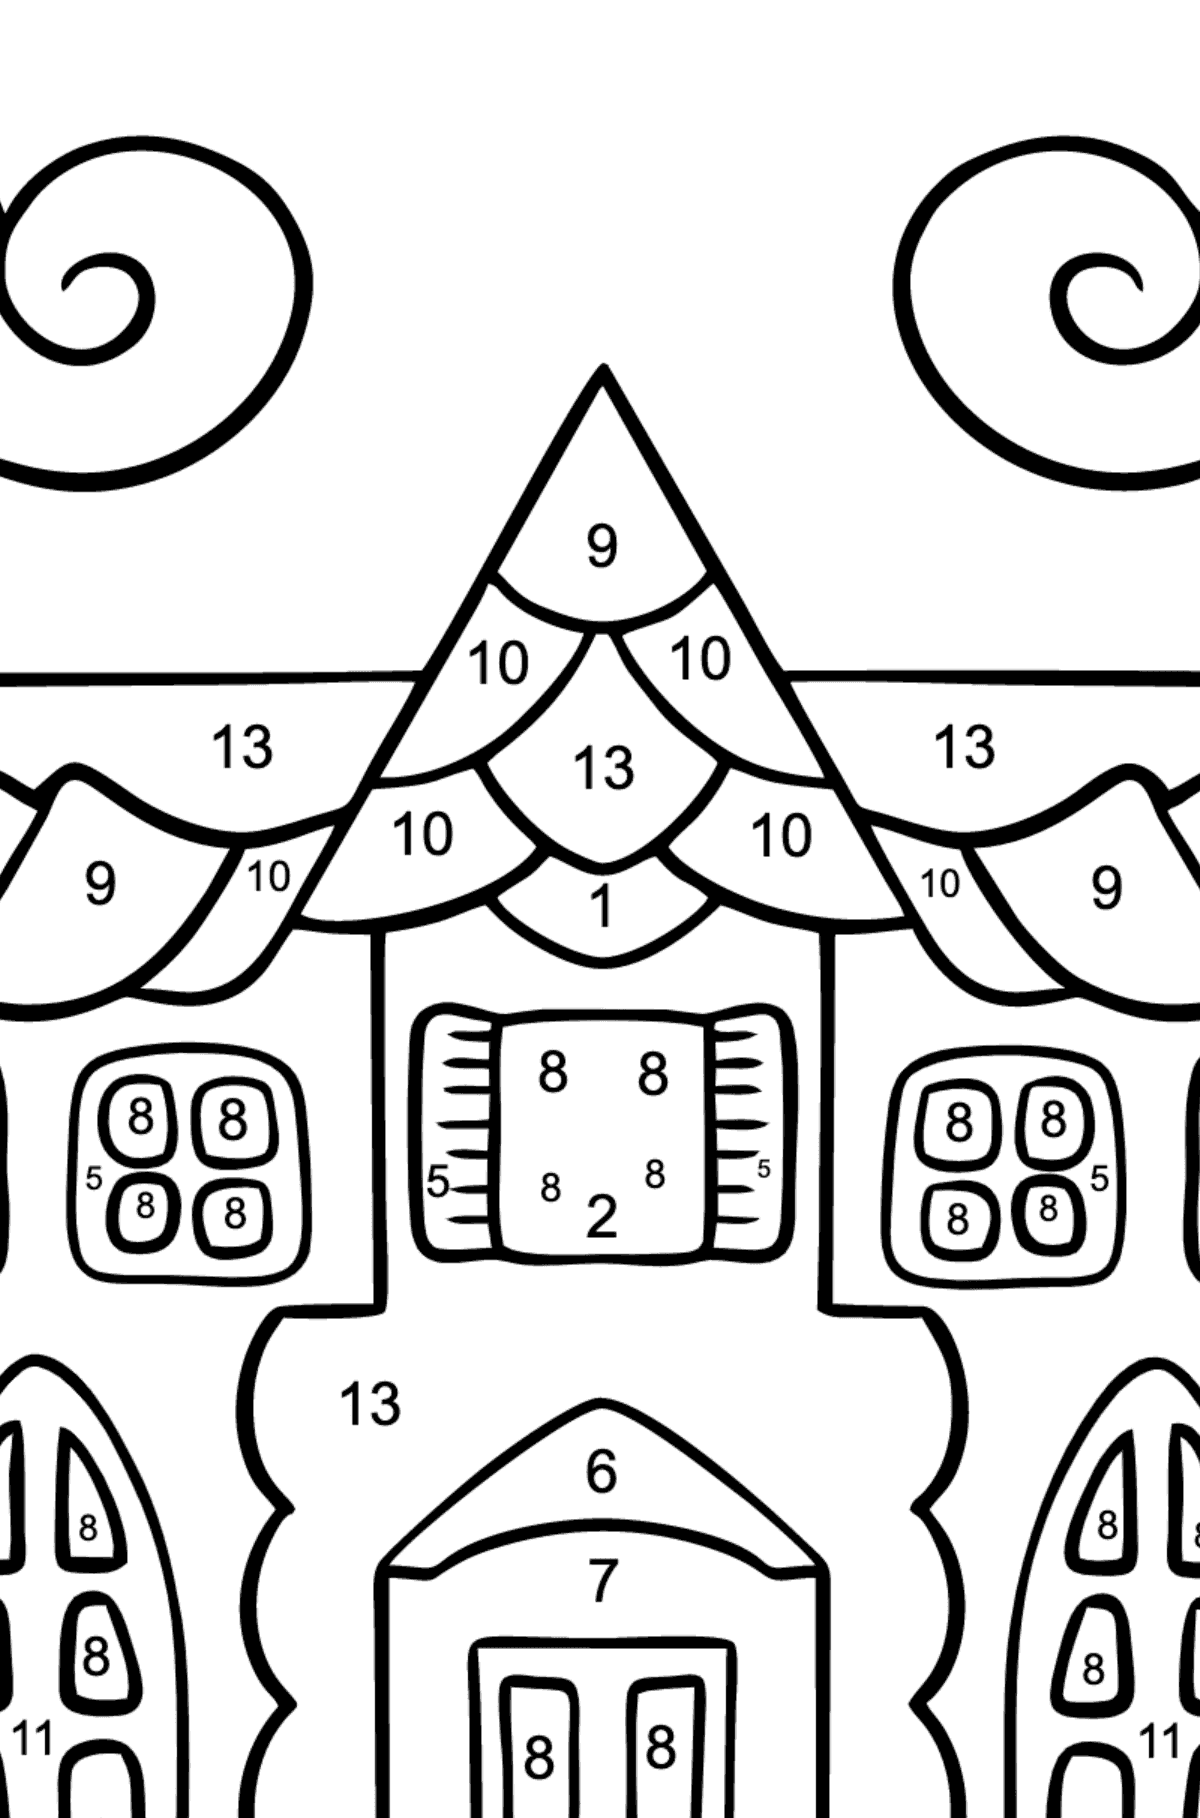 Complex Coloring Page - A House in an Enchanted Kingdom - Coloring by Numbers for Kids